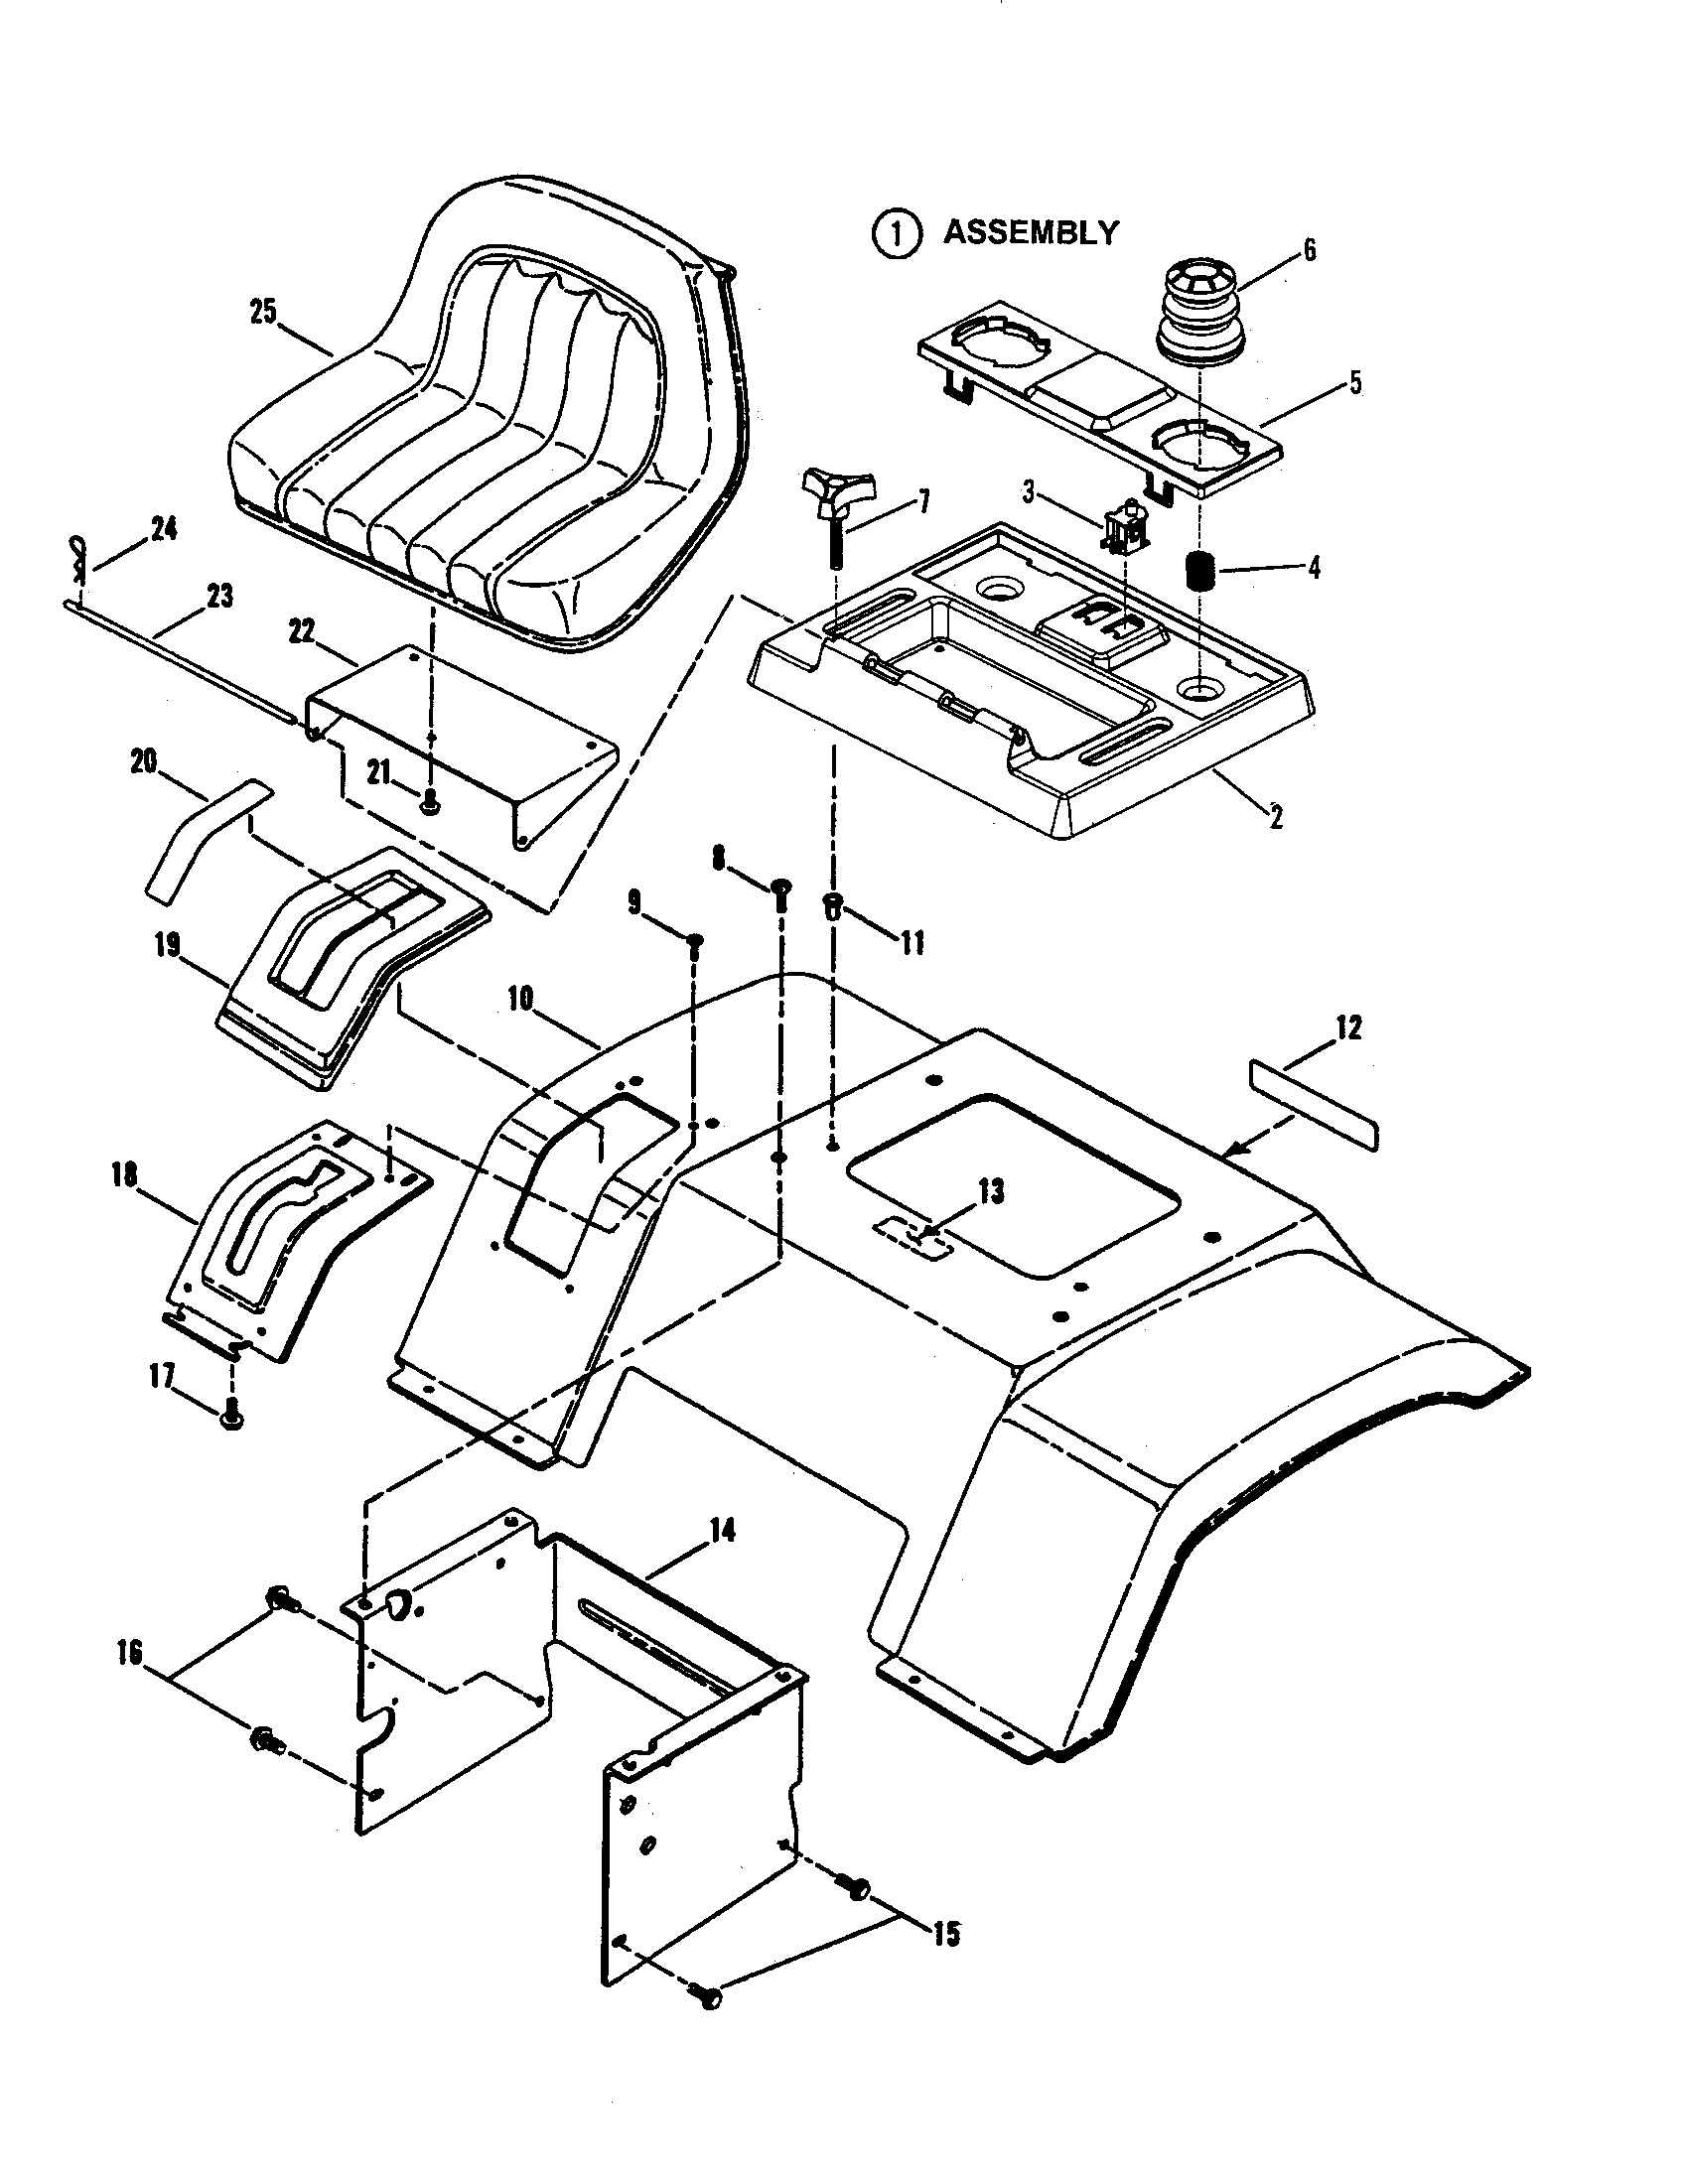 SEAT/REAR FENDER Diagram & Parts List for Model